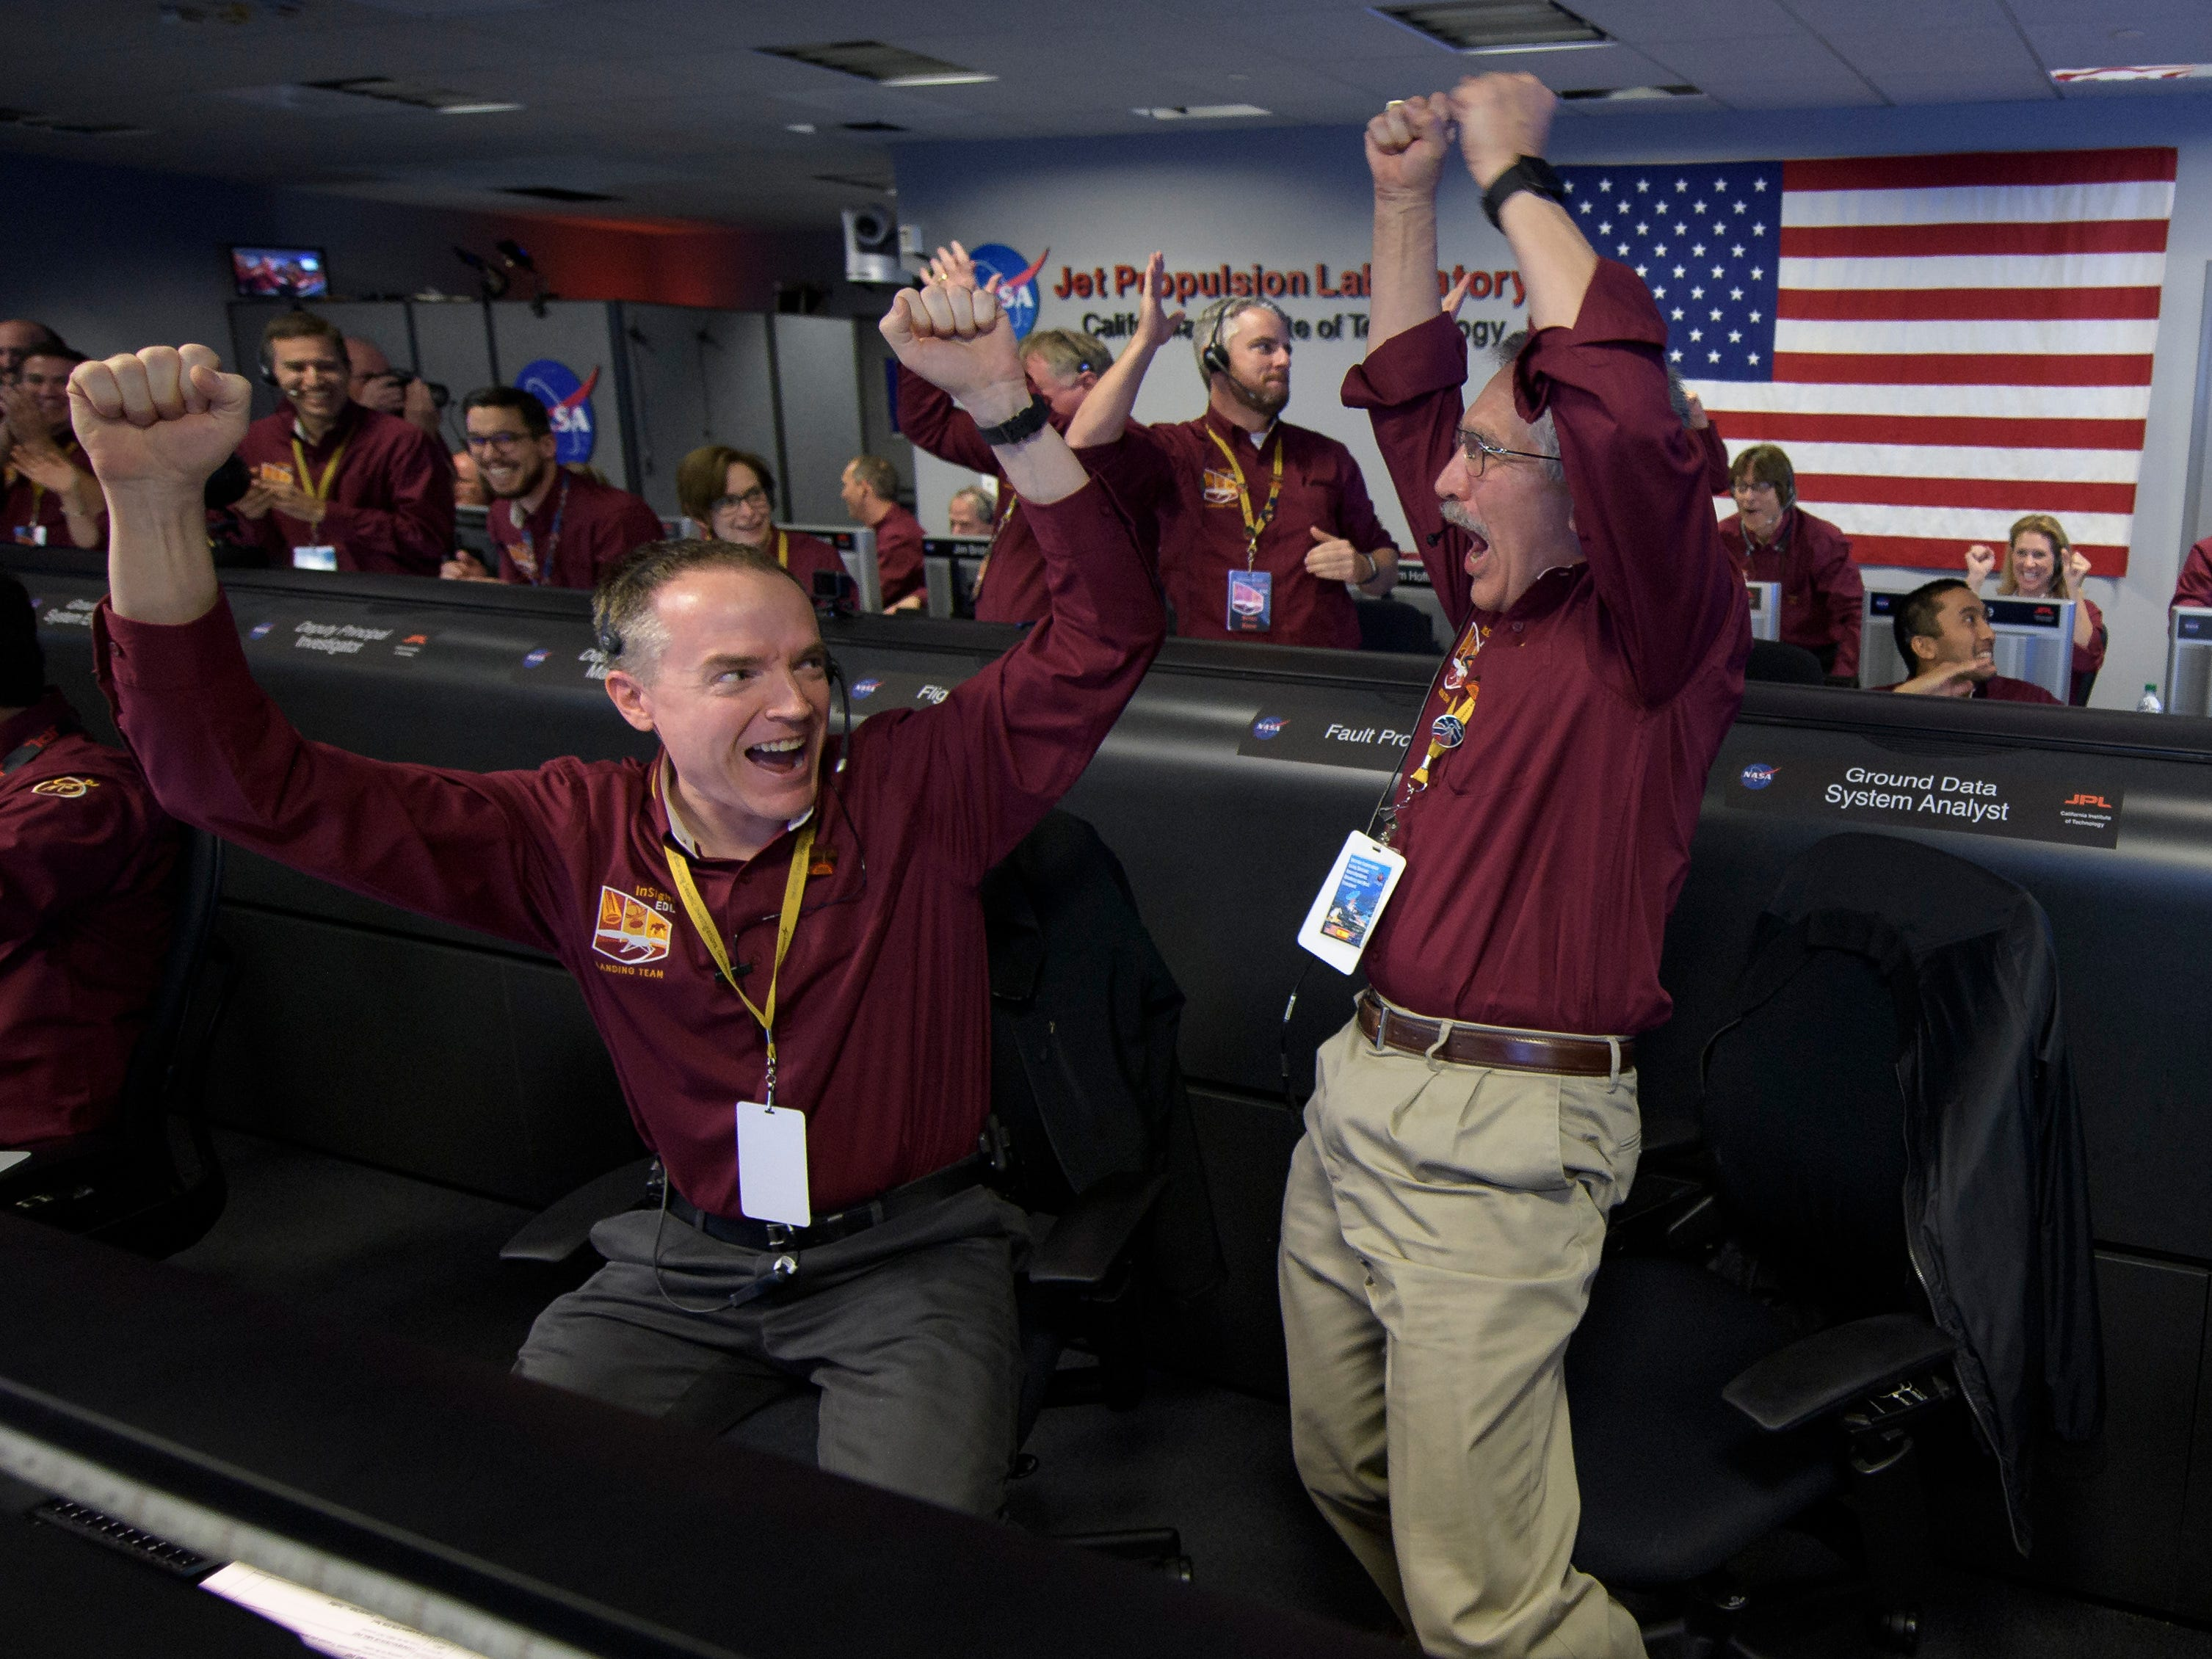 """Mars InSight team members Kris Bruvold, left, and Sandy Krasner react after receiving confirmation that the Mars InSight lander successfully touched down on the surface of Mars, inside the Mission Support Area at NASA's Jet Propulsion Laboratory on November 26, 2018, in Pasadena, California.  InSight, short for Interior Exploration using Seismic Investigations, Geodesy and Heat Transport, is a Mars lander designed to study the """"inner space"""" of Mars: its crust, mantle, and core."""